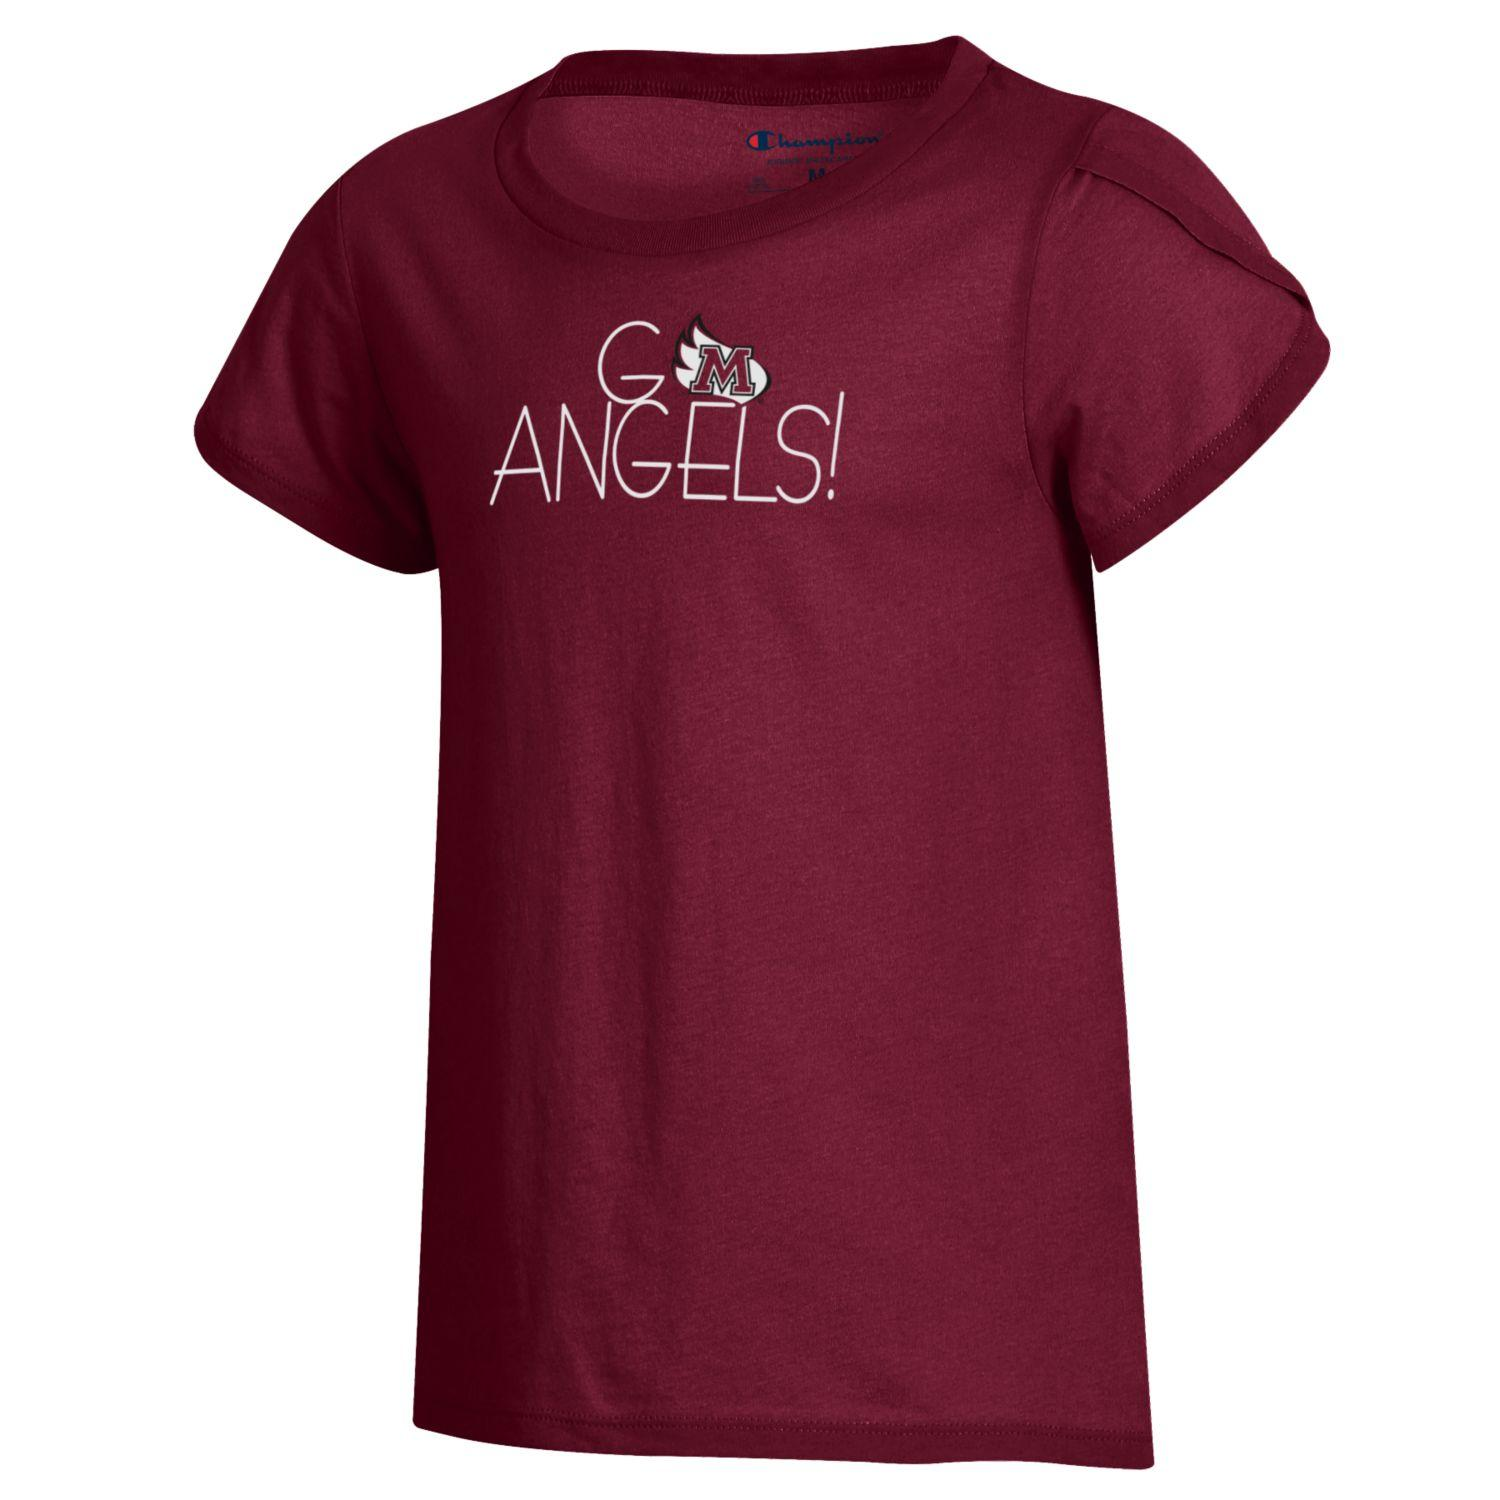 """Image for the Girl's Short Sleeve """"Girly"""" Tee, Maroon product"""